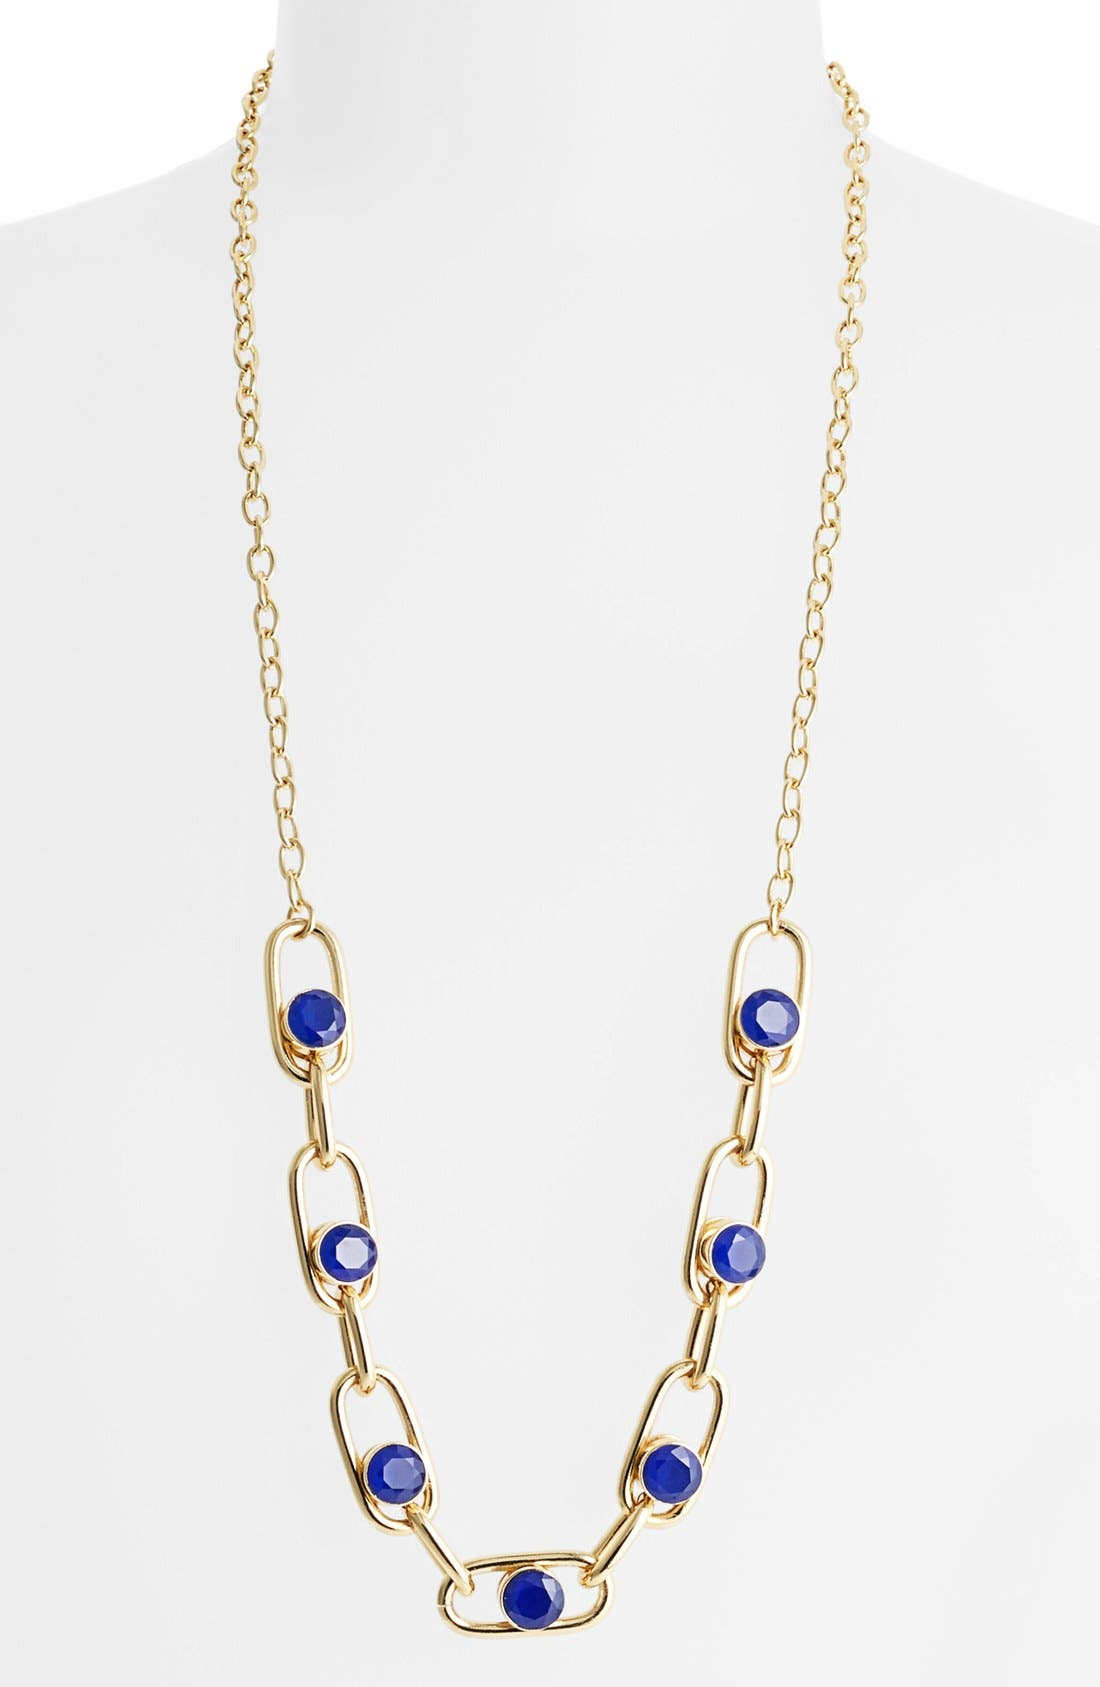 Main Image - kate spade new york 'get rolling' long link necklace